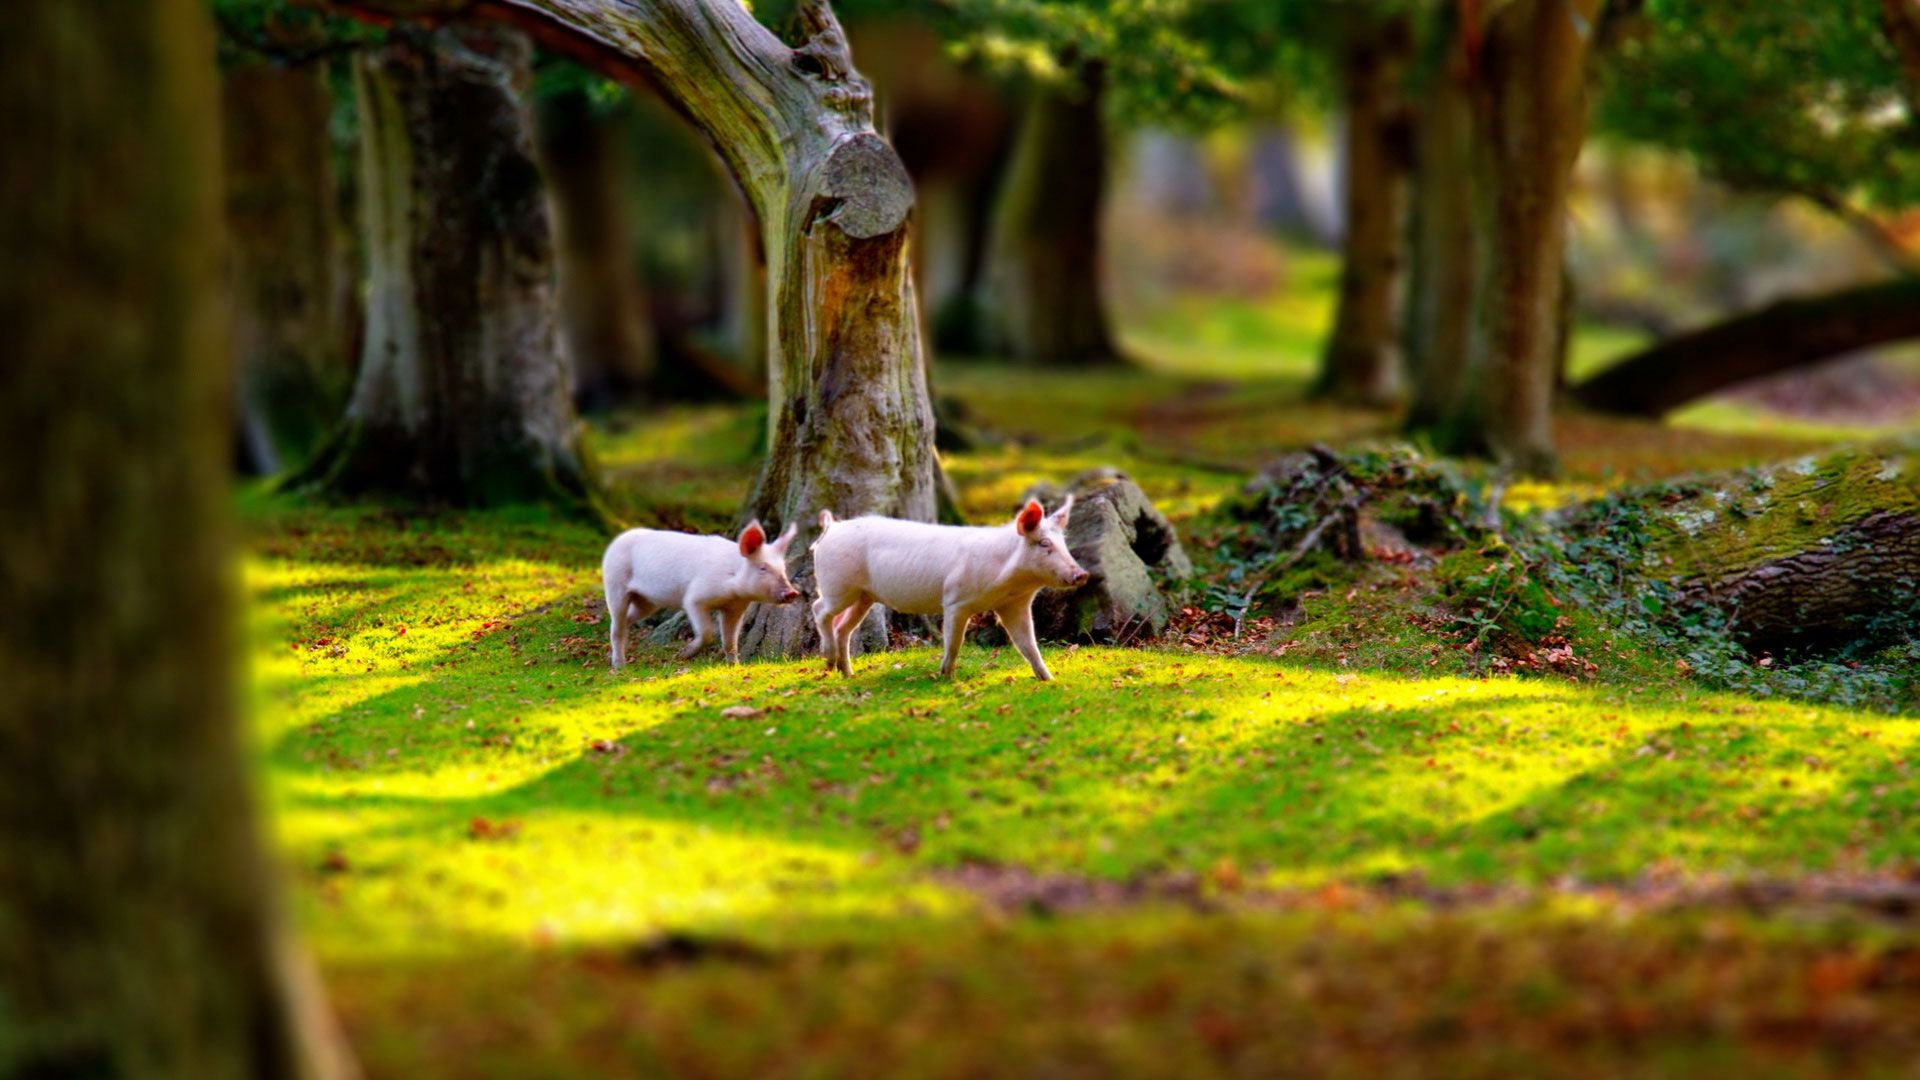 Pictures Of Beautiful Piglets In Nature